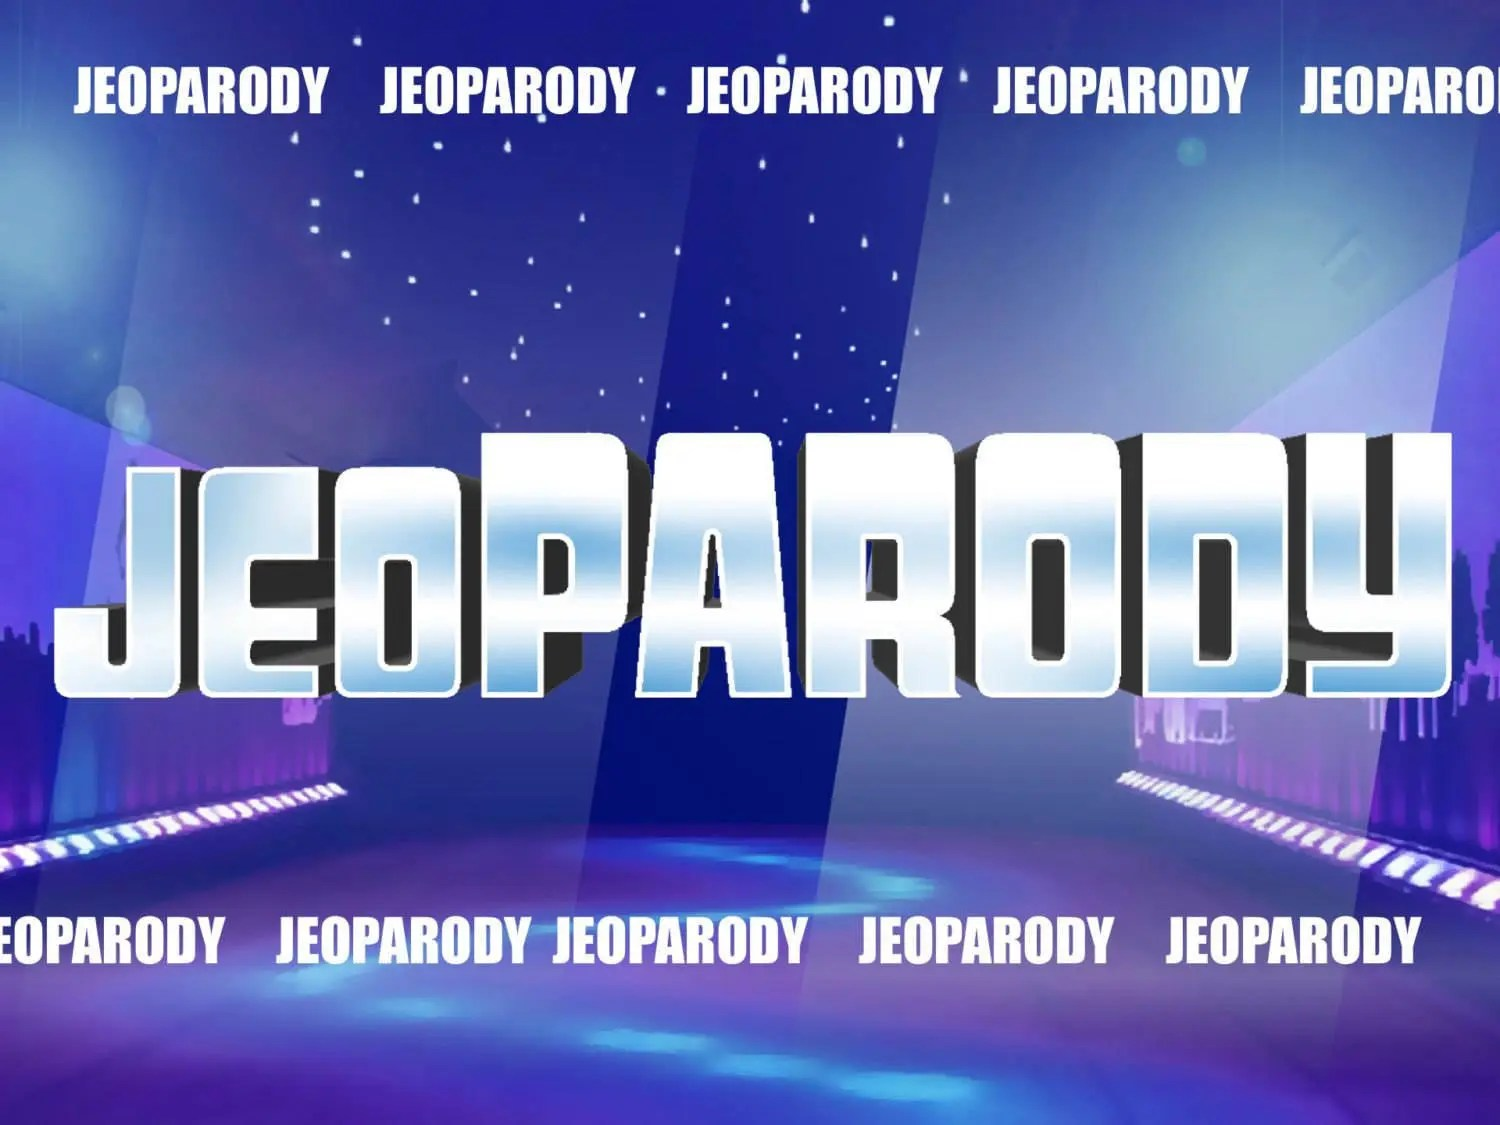 Customizable Jeopardy Powerpoint Template - jeopardy powerpoint template